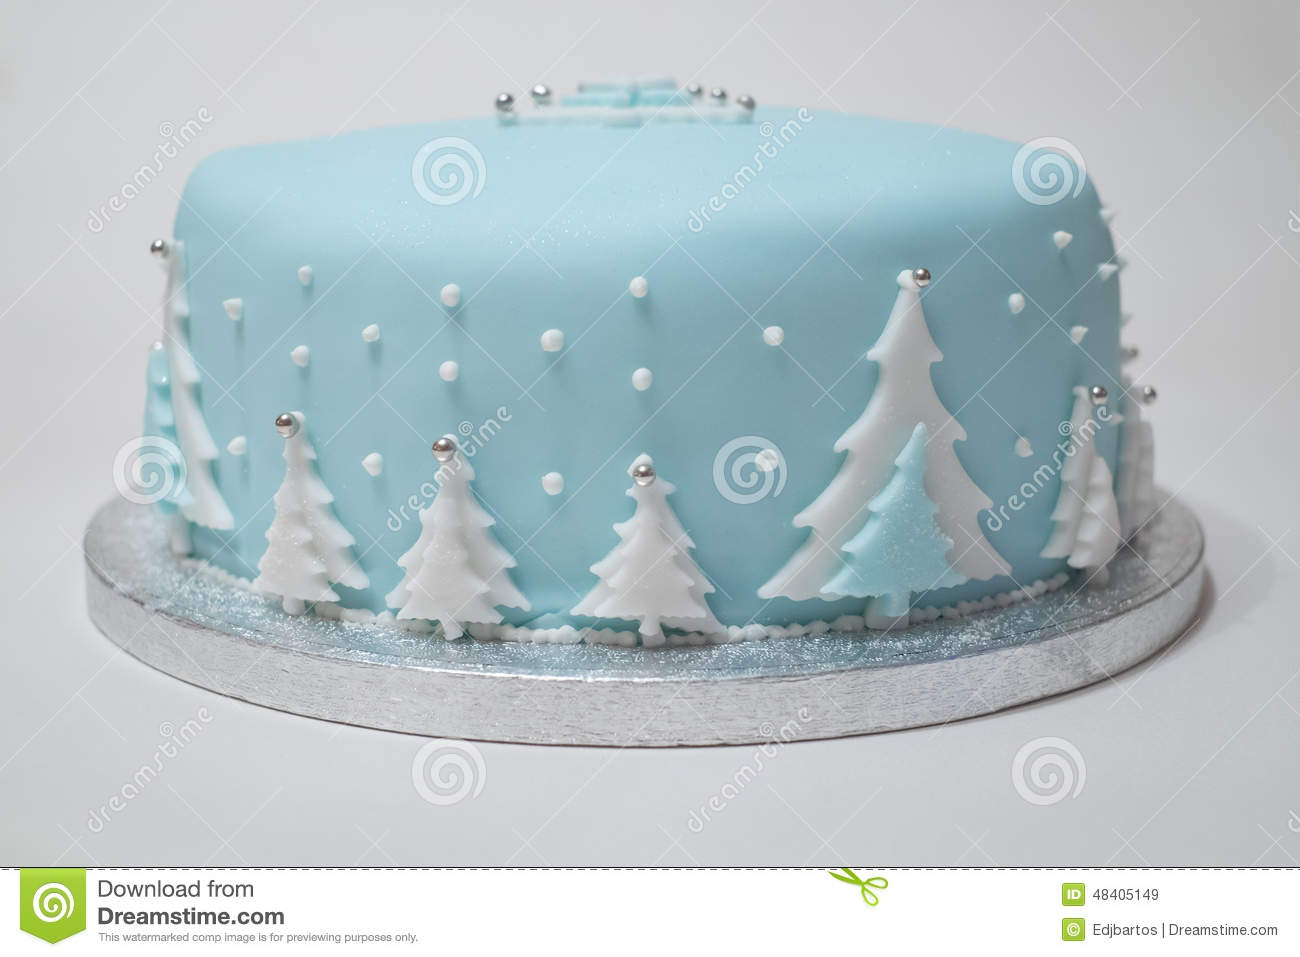 Christmas cake with blue icing christmas tree s decorate the outside